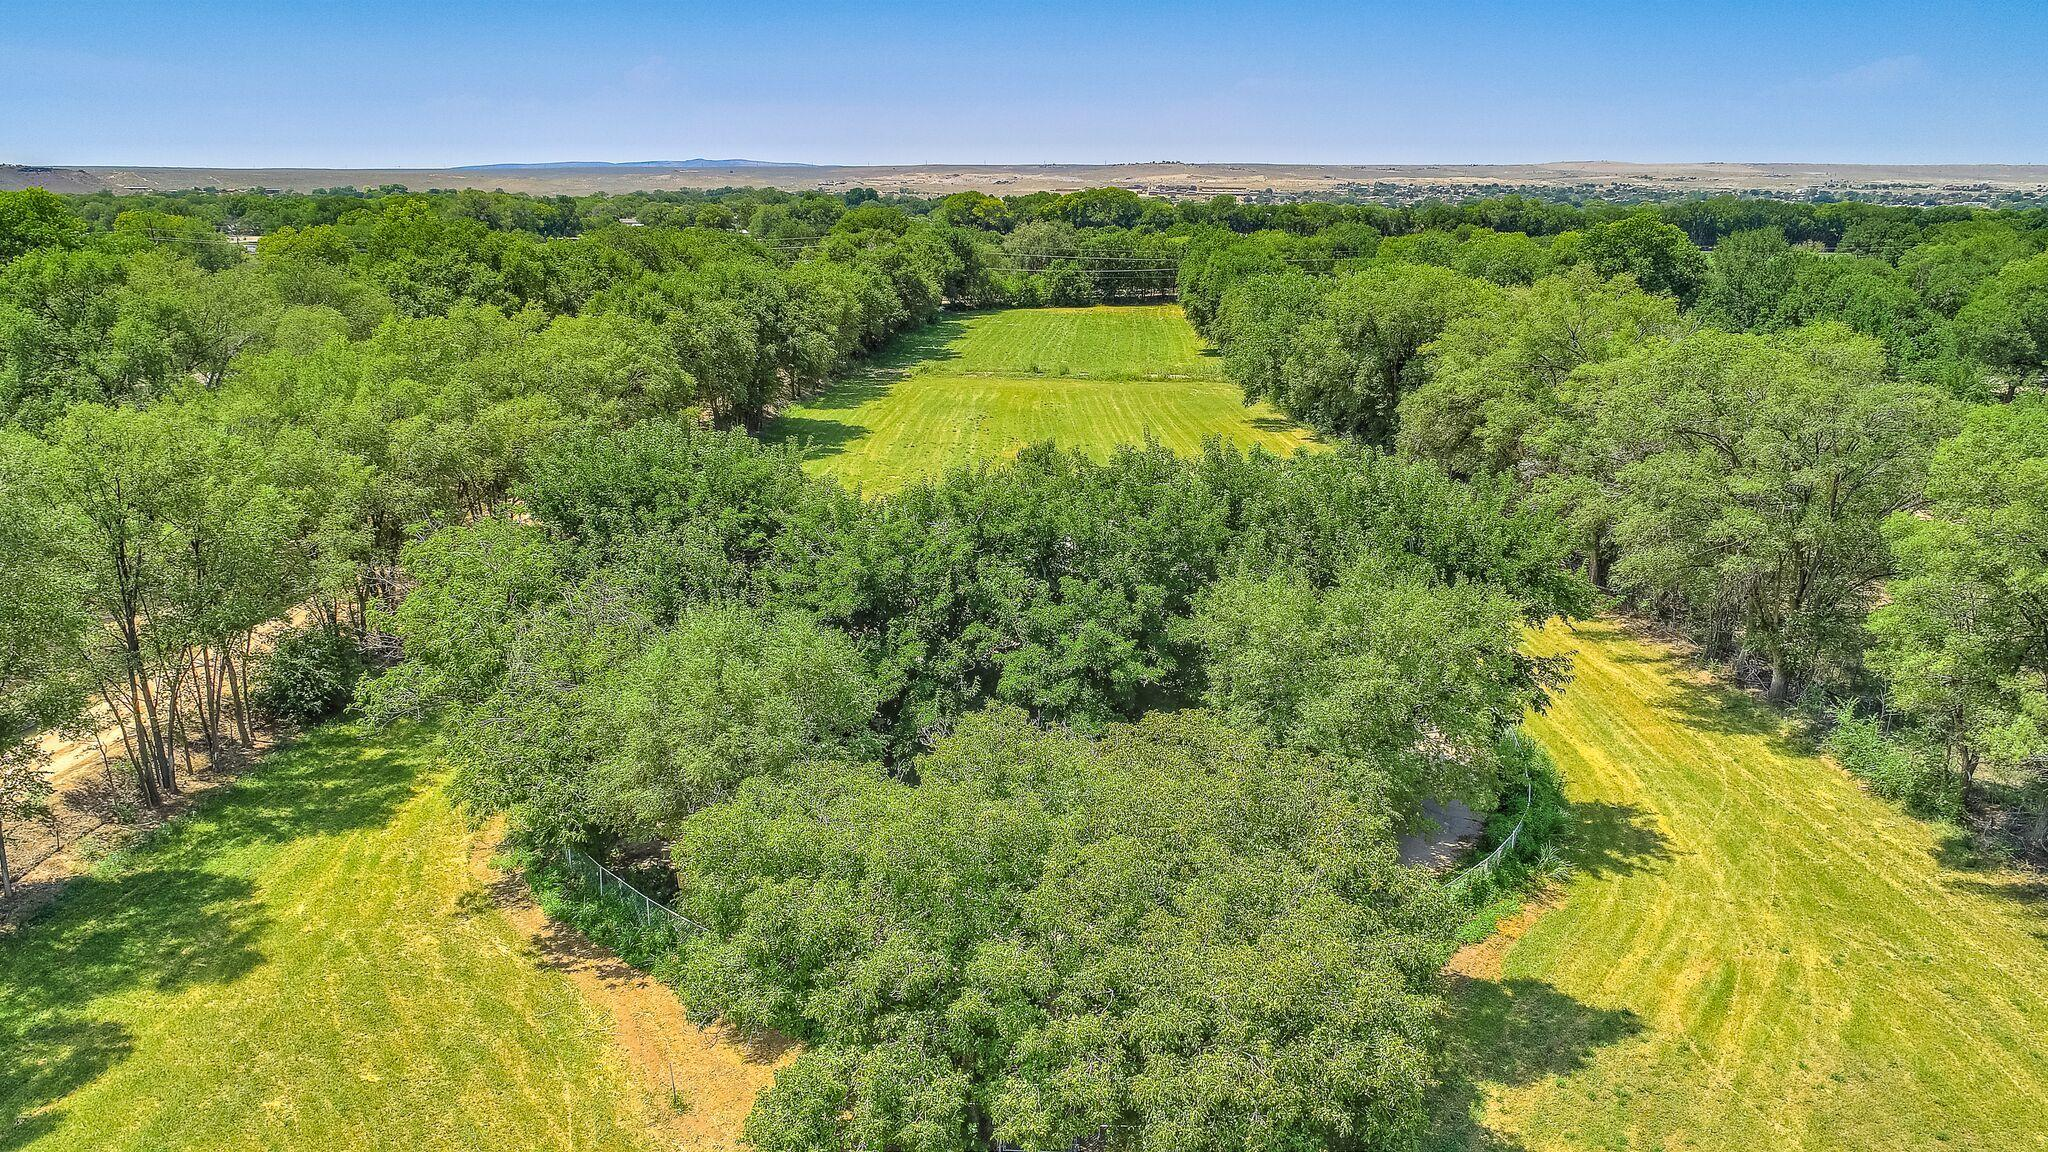 Nearly 6 acres in the heart of the Rio Grande green belt. Water rights for ditch irrigation, and a private well for home use. The fenced and gated property can accommodate farming and horses. A large 4 car garage with attached workshop and storage has over 1,800sf of space. An orchard of about 20 trees includes walnuts, cherries, plums, pears, peaches, apricots, and apples. The front gate is set-back over 400 feet from the road, and the 100-or-so perimeter trees provide unmatched seclusion and privacy. The convenient location means less than 3-minutes to I-25, 10-minutes to shopping and dining, and 6-minutes to Isleta Casino and Resort.  The nearly 2,000sf home was remodeled in 2007/2008, and has been lovingly maintained.